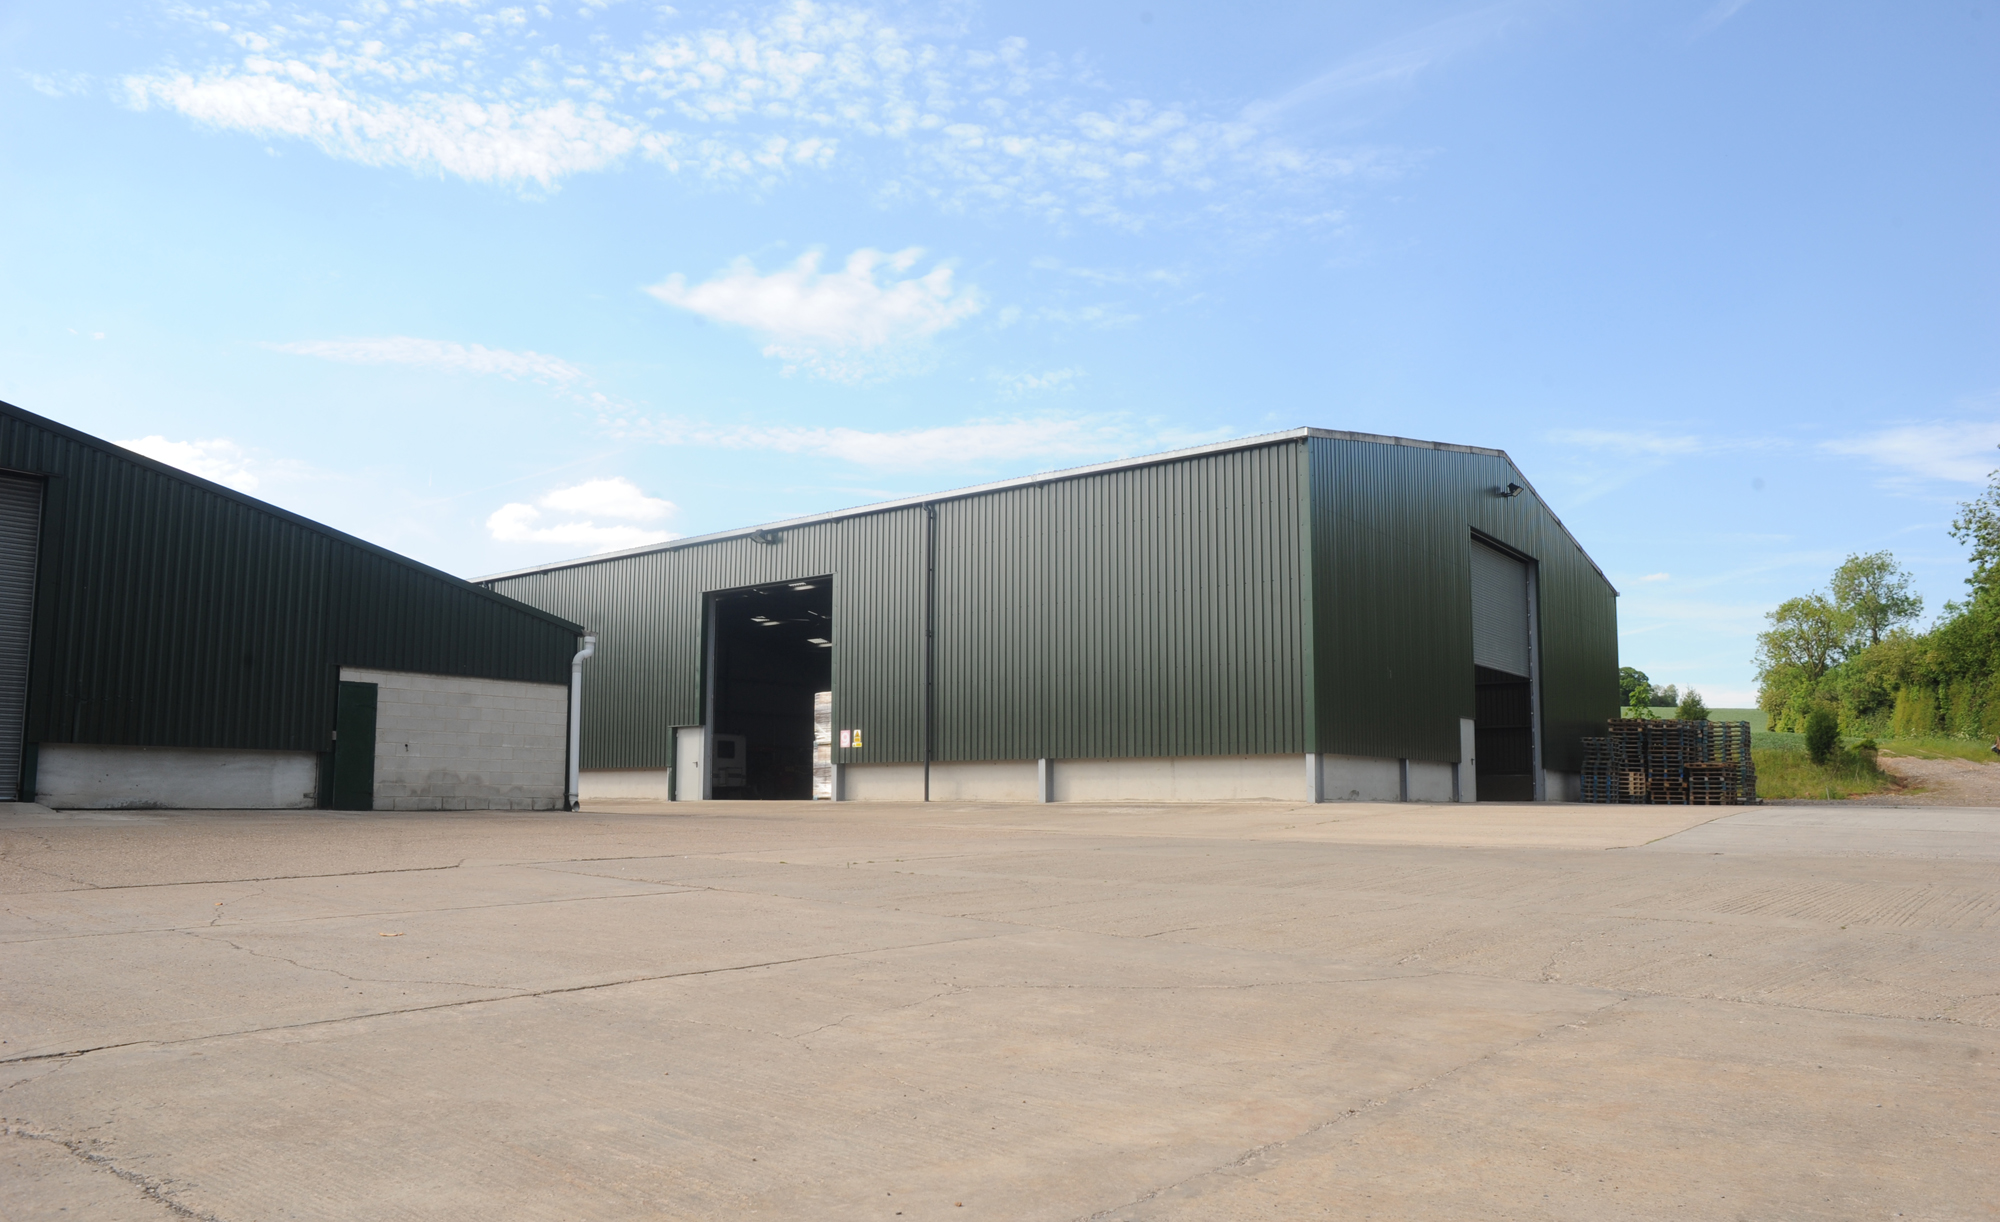 High access warehouse doors and spacious yard for HGVs at bulk pallet storage site